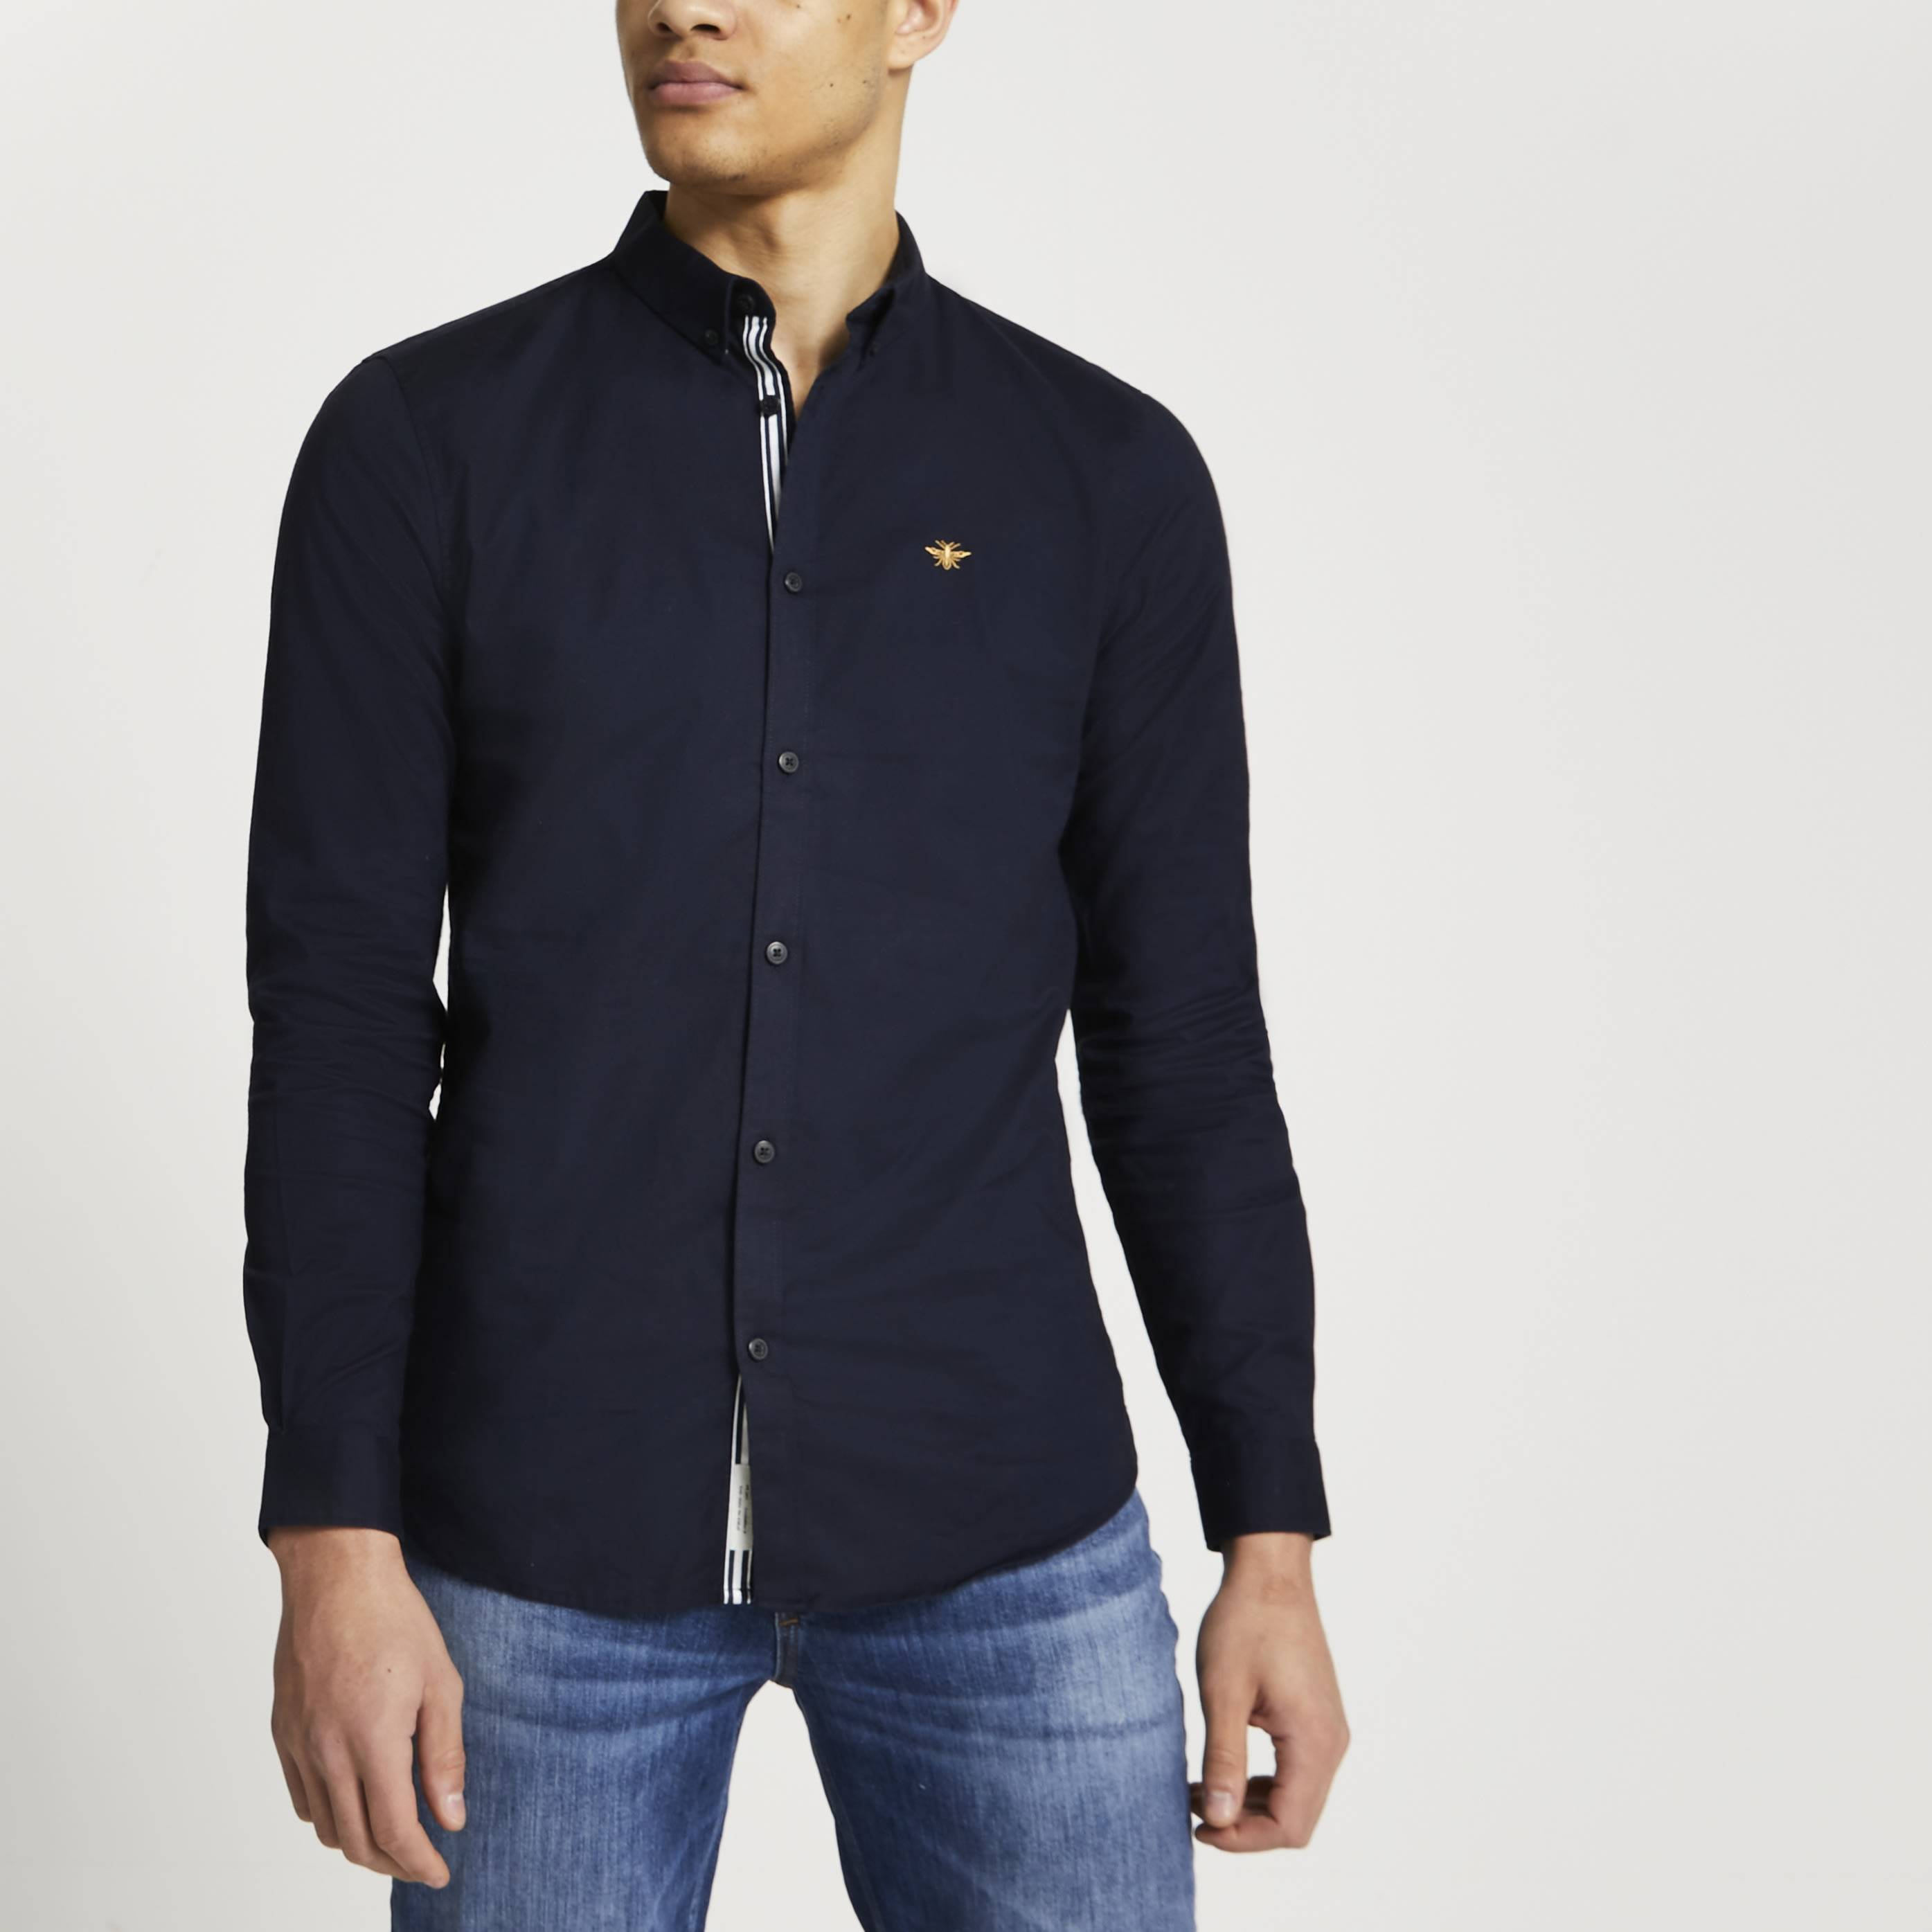 River Island Mens Navy embroidered muscle fit Oxford shirt (S)